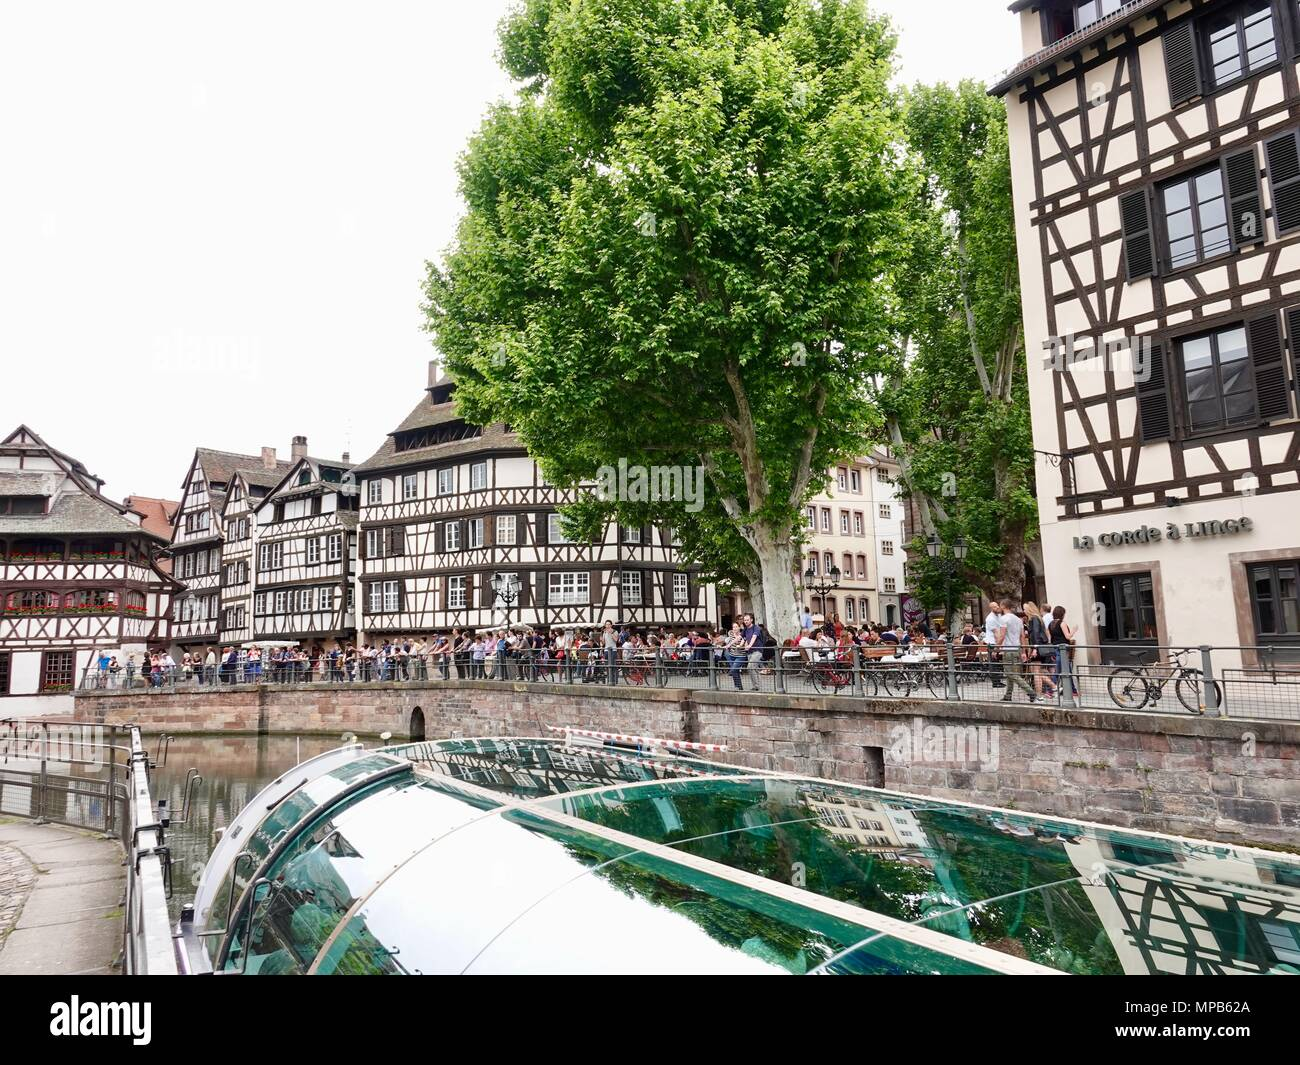 People lined up along the canal to watch as tourist boat exits a lock. Strasbourg, France - Stock Image